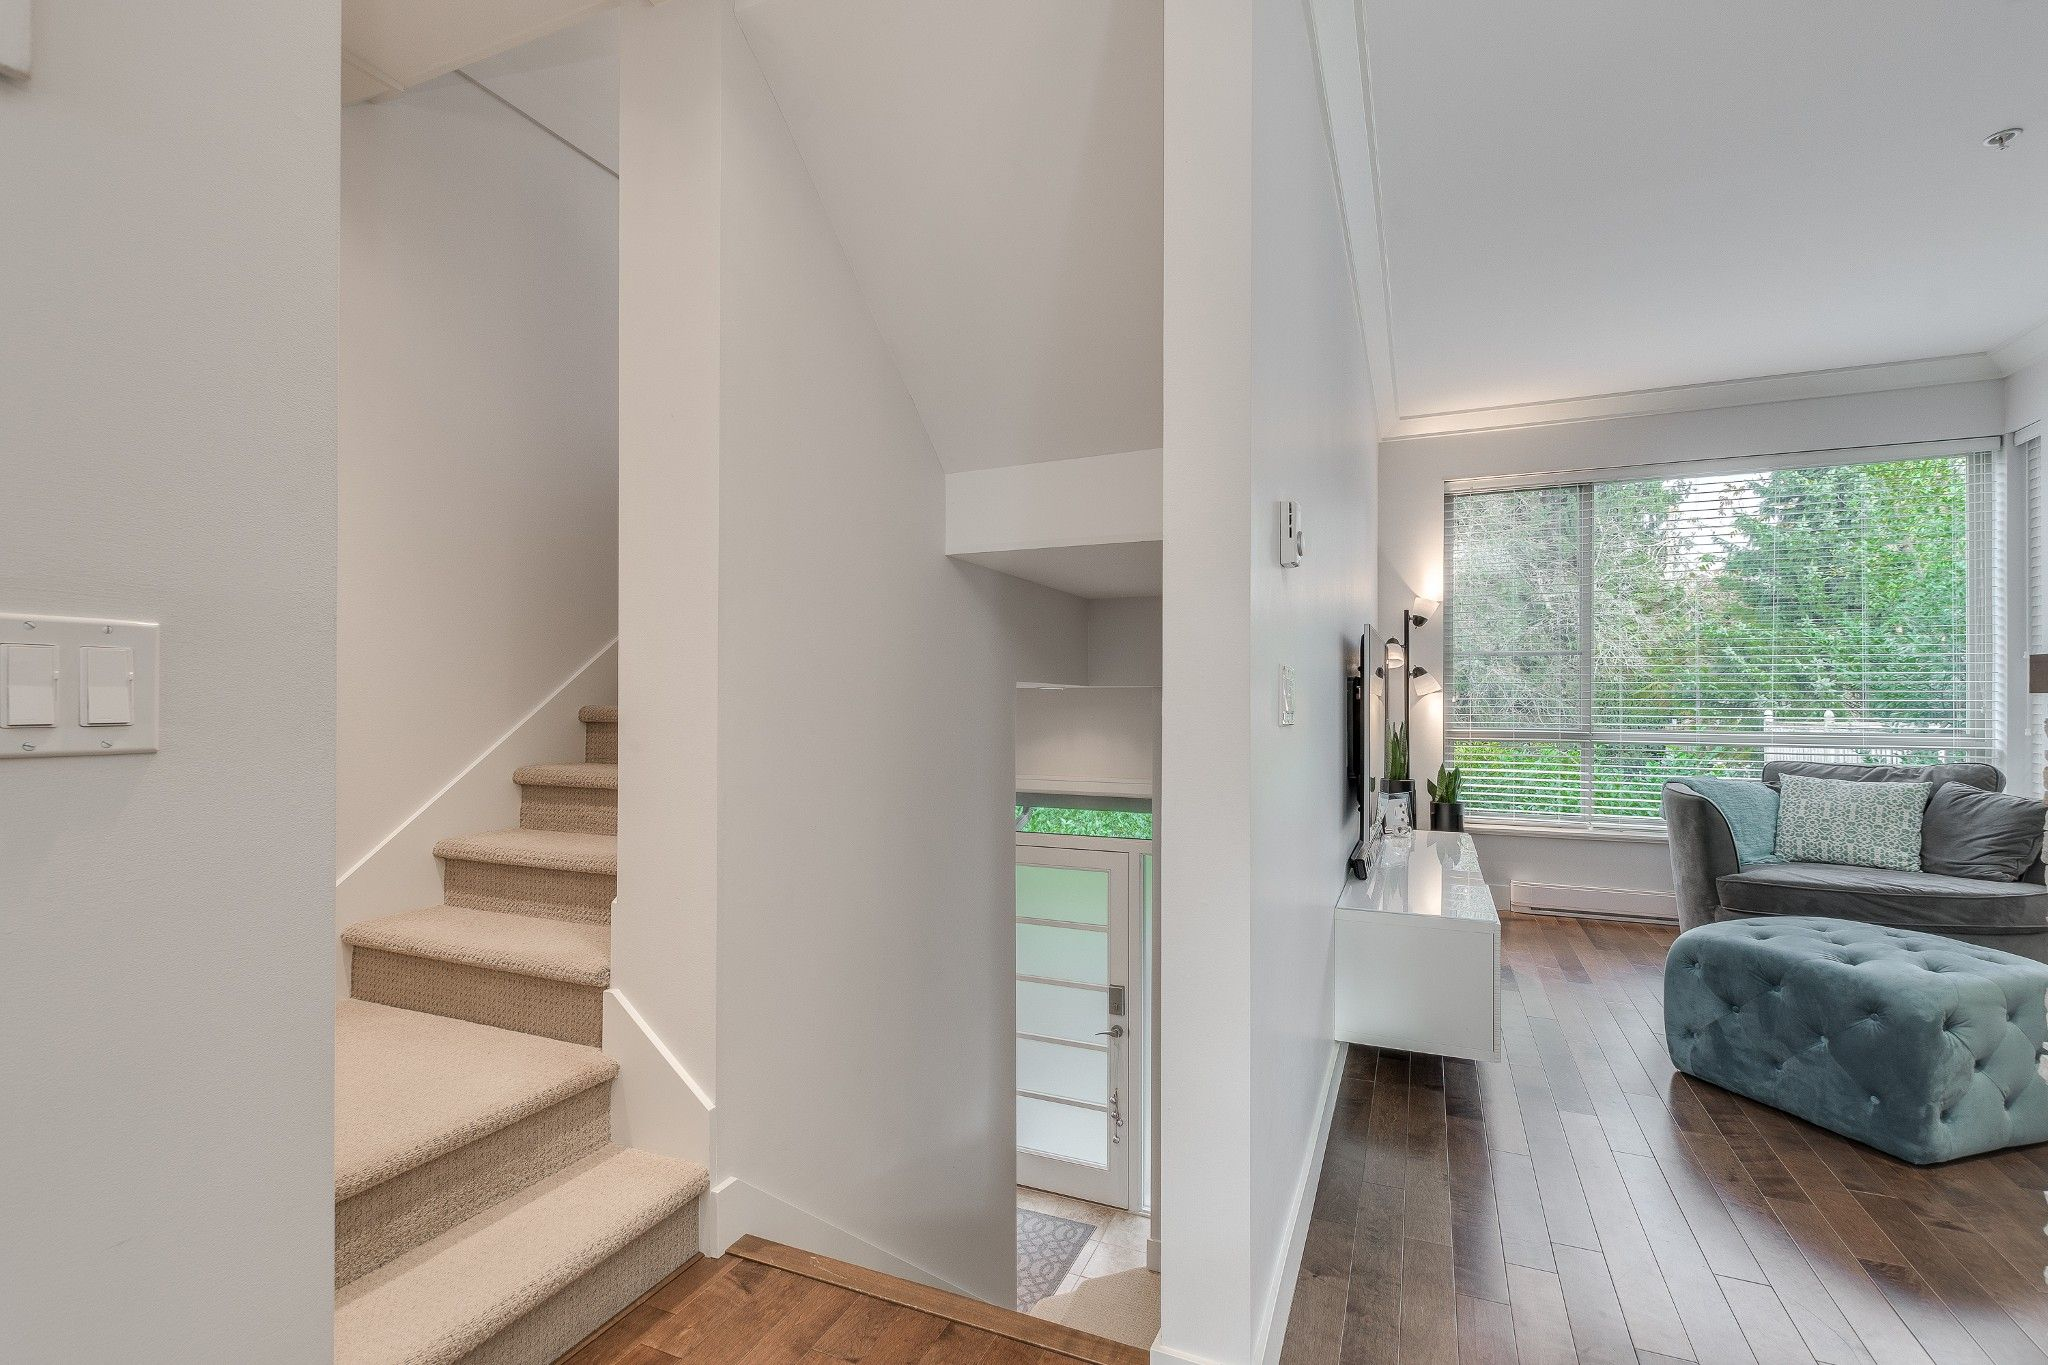 Photo 13: Photos: 24 897 Premier Street in : Lynnmour Townhouse for sale (North Vancouver)